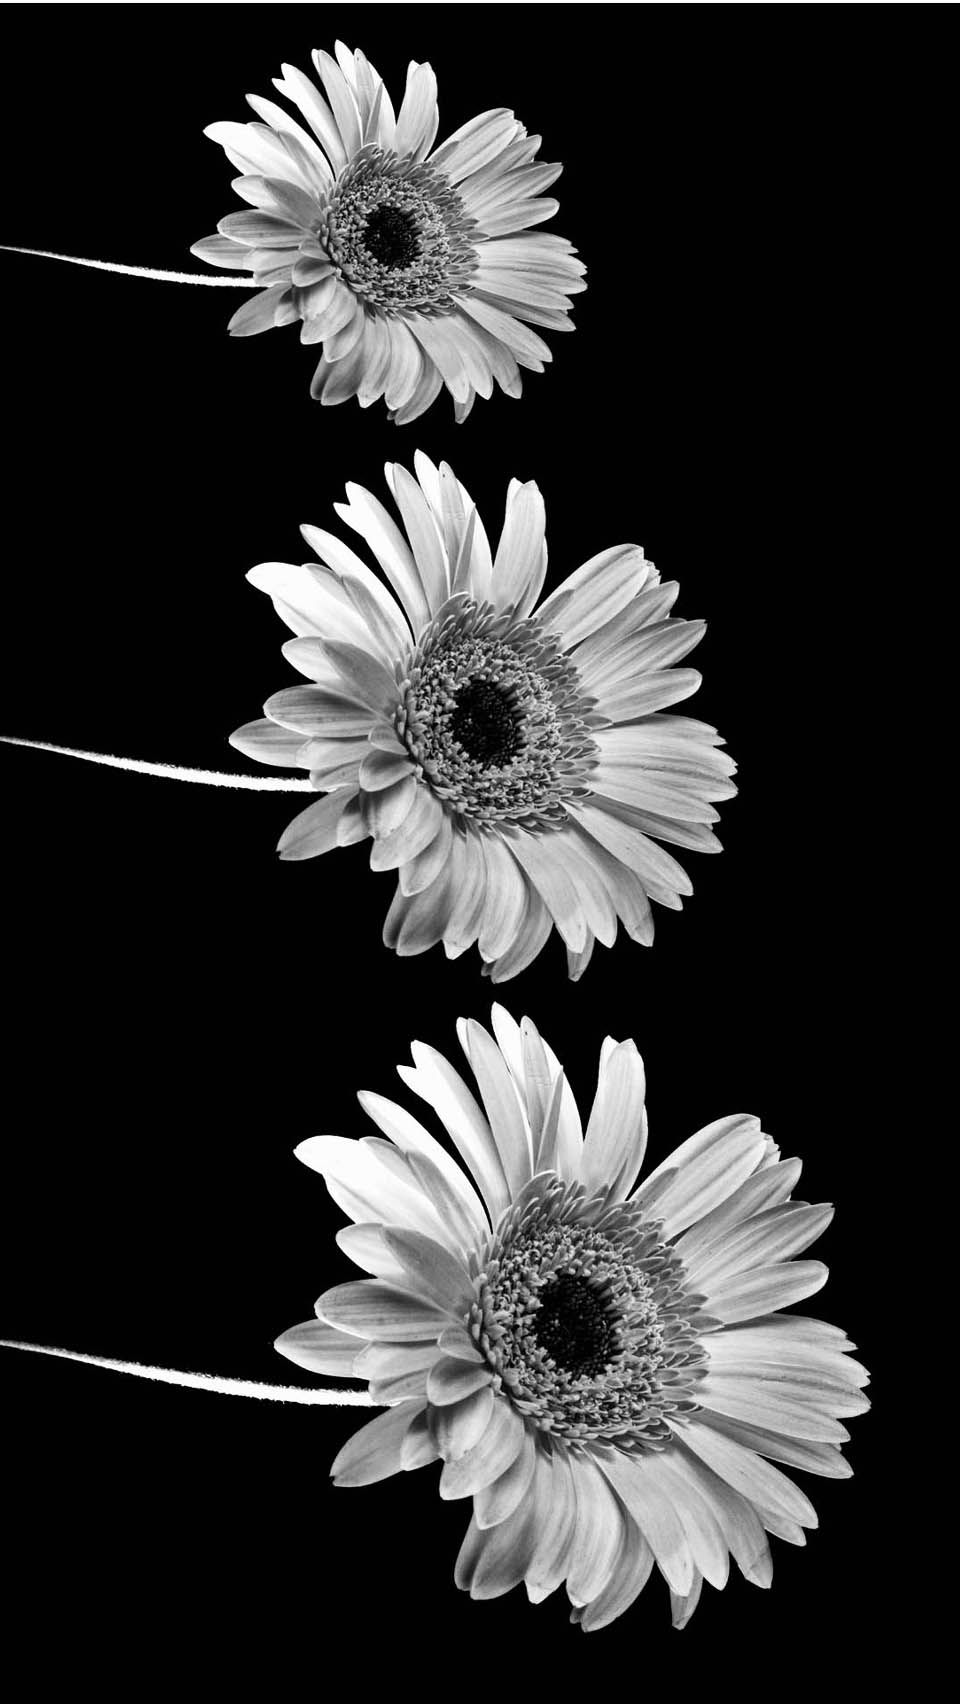 Aesthetic Black and White Wallpapers - Top Free Aesthetic ...